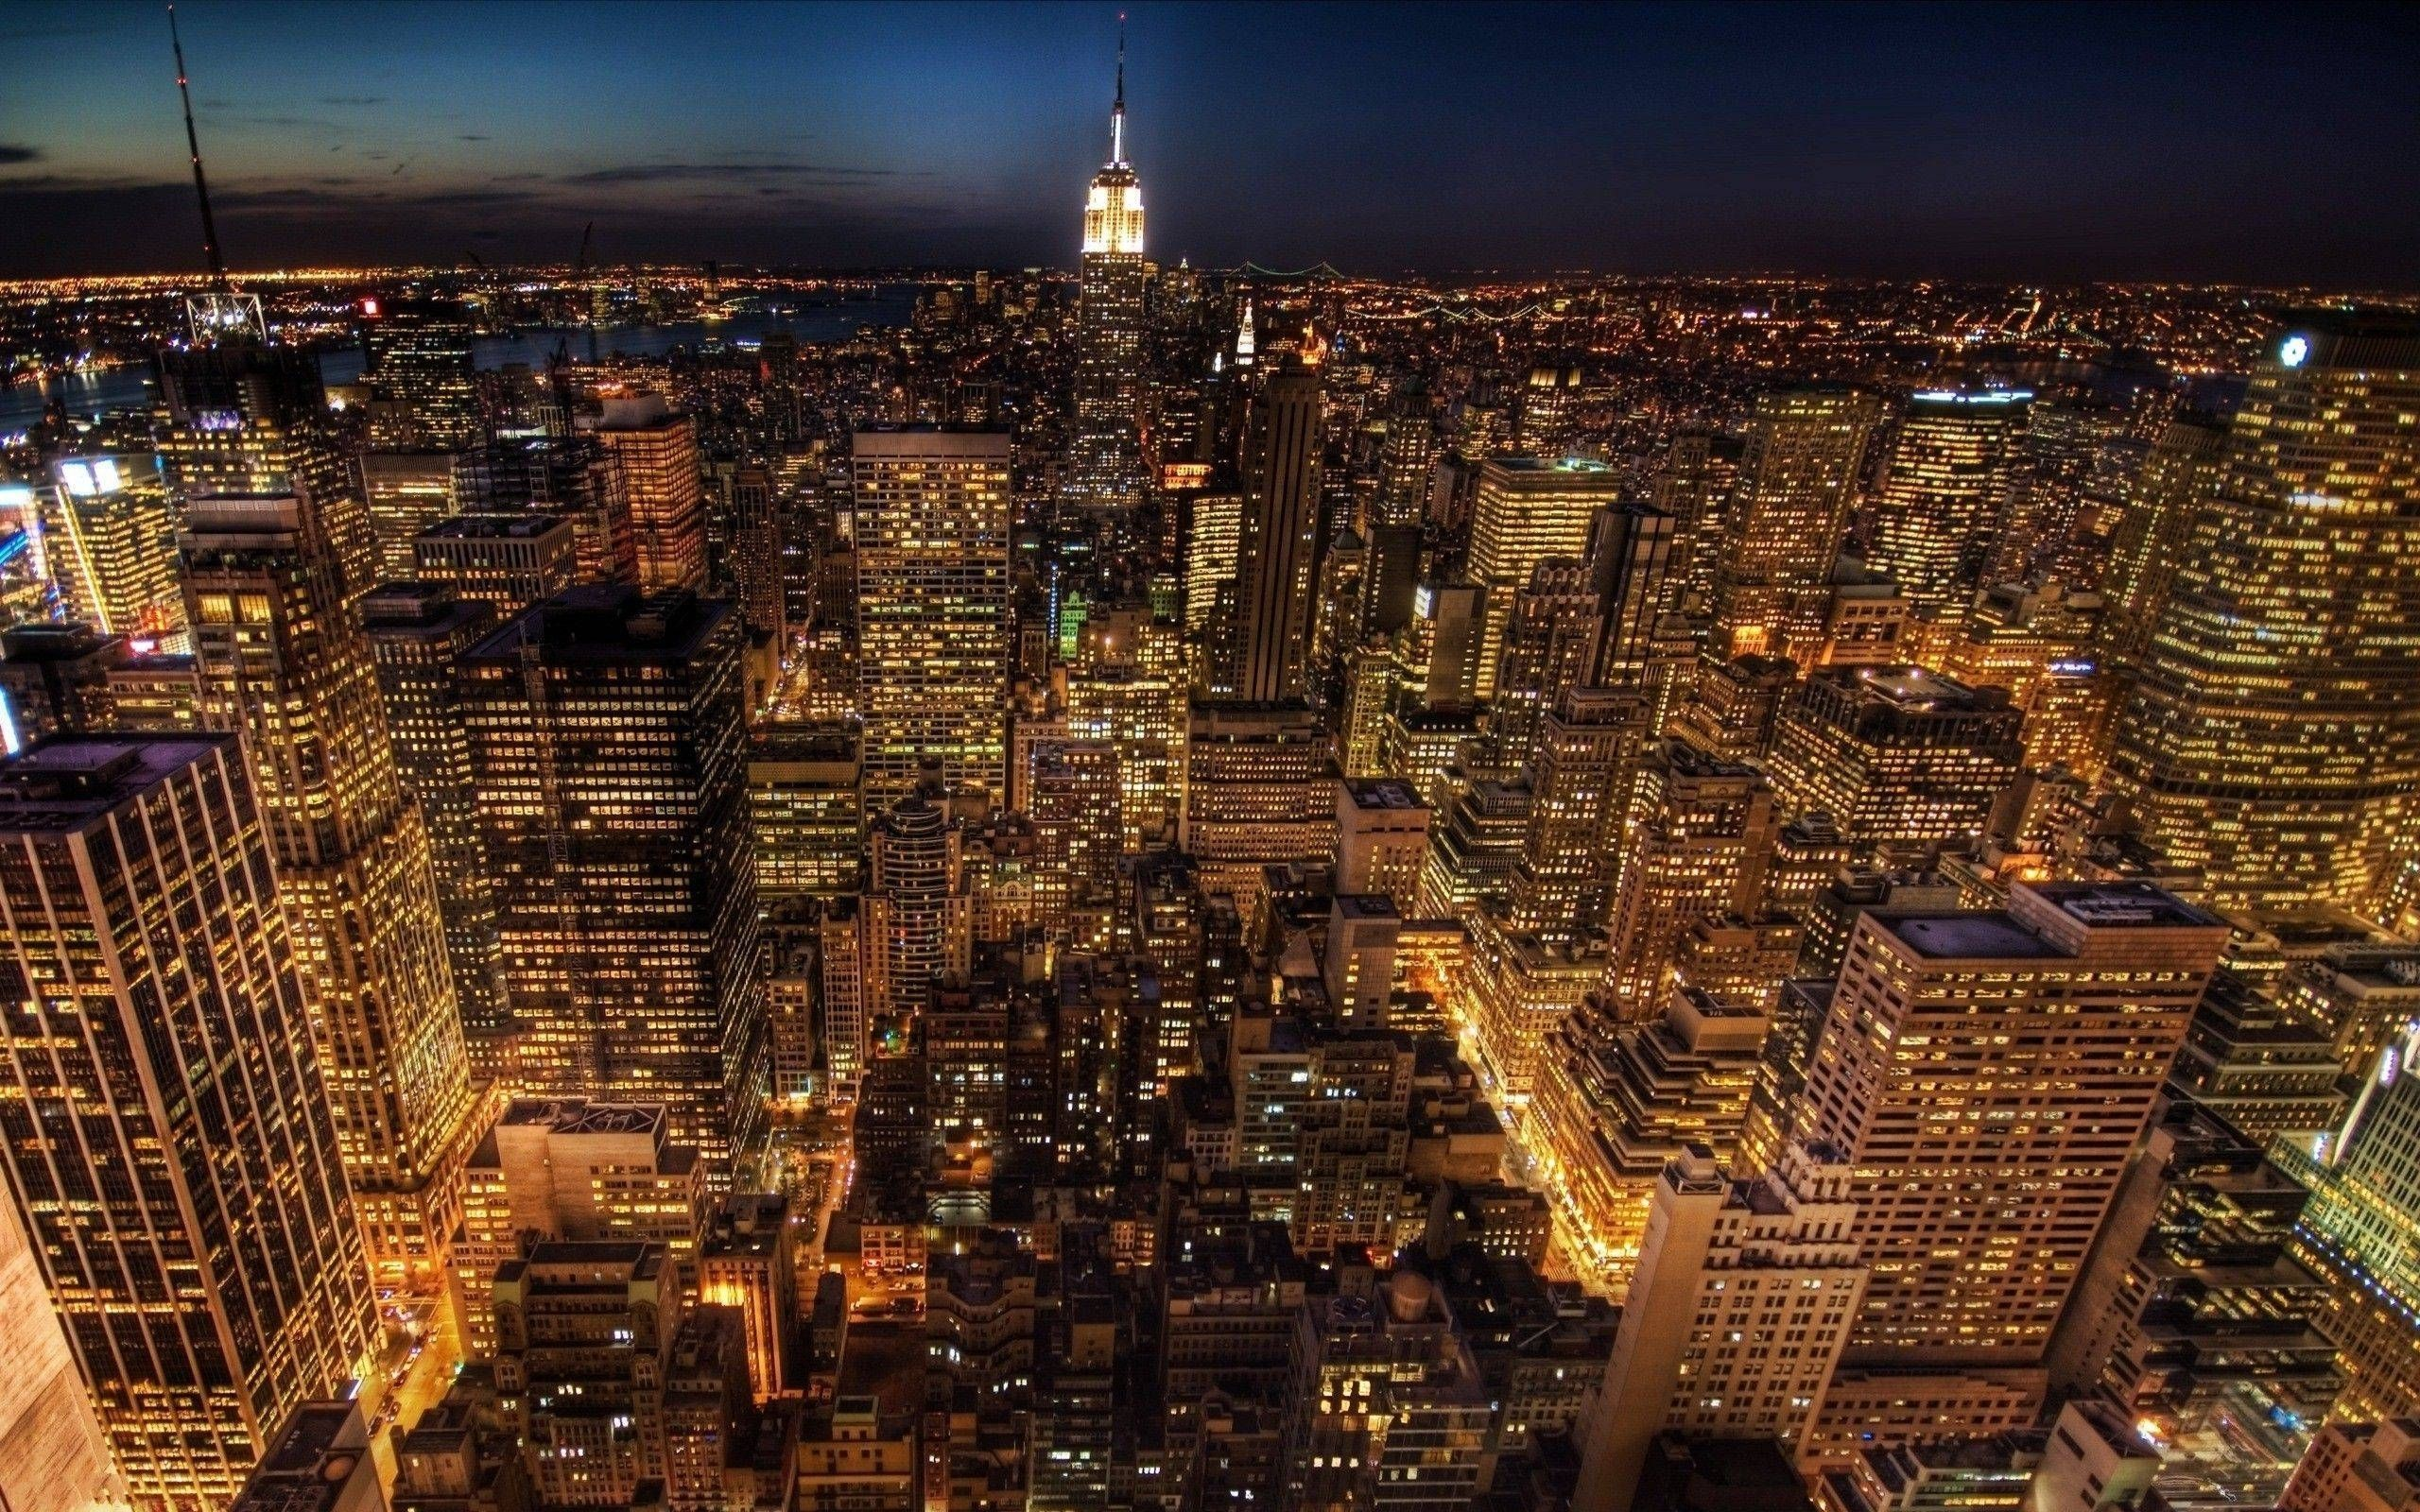 10 Best New York City Night Hd Wallpaper Full Hd 1080p For Pc